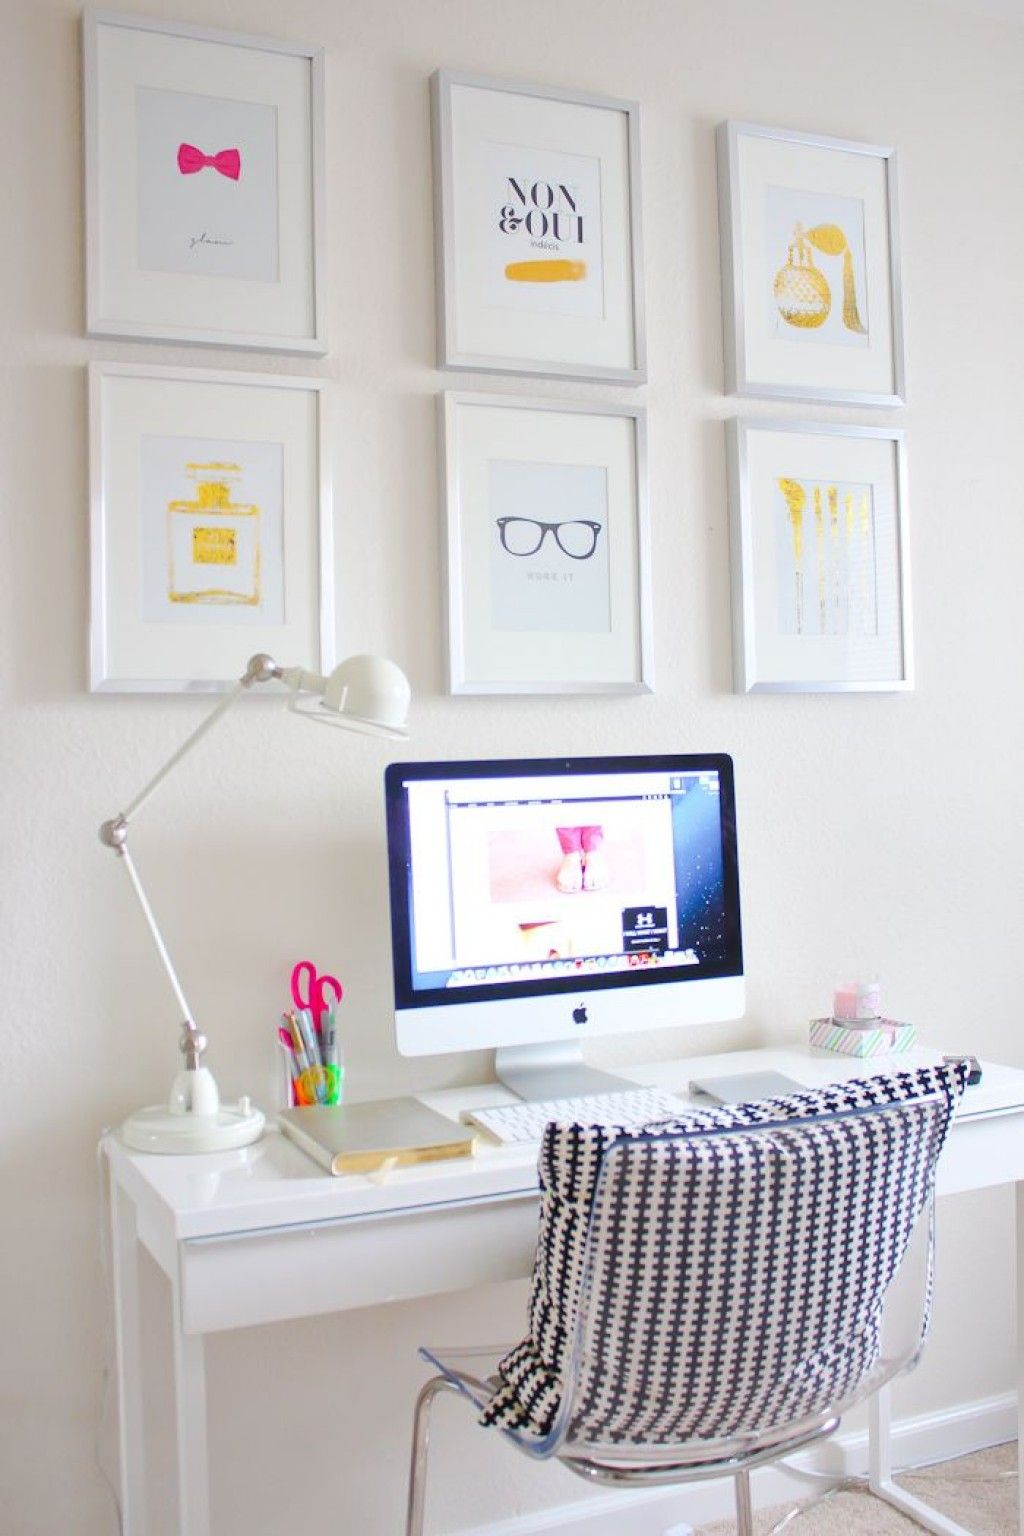 How Do Decorate Your Own Home Without Having Too Pay A Lot Of Money To Designers